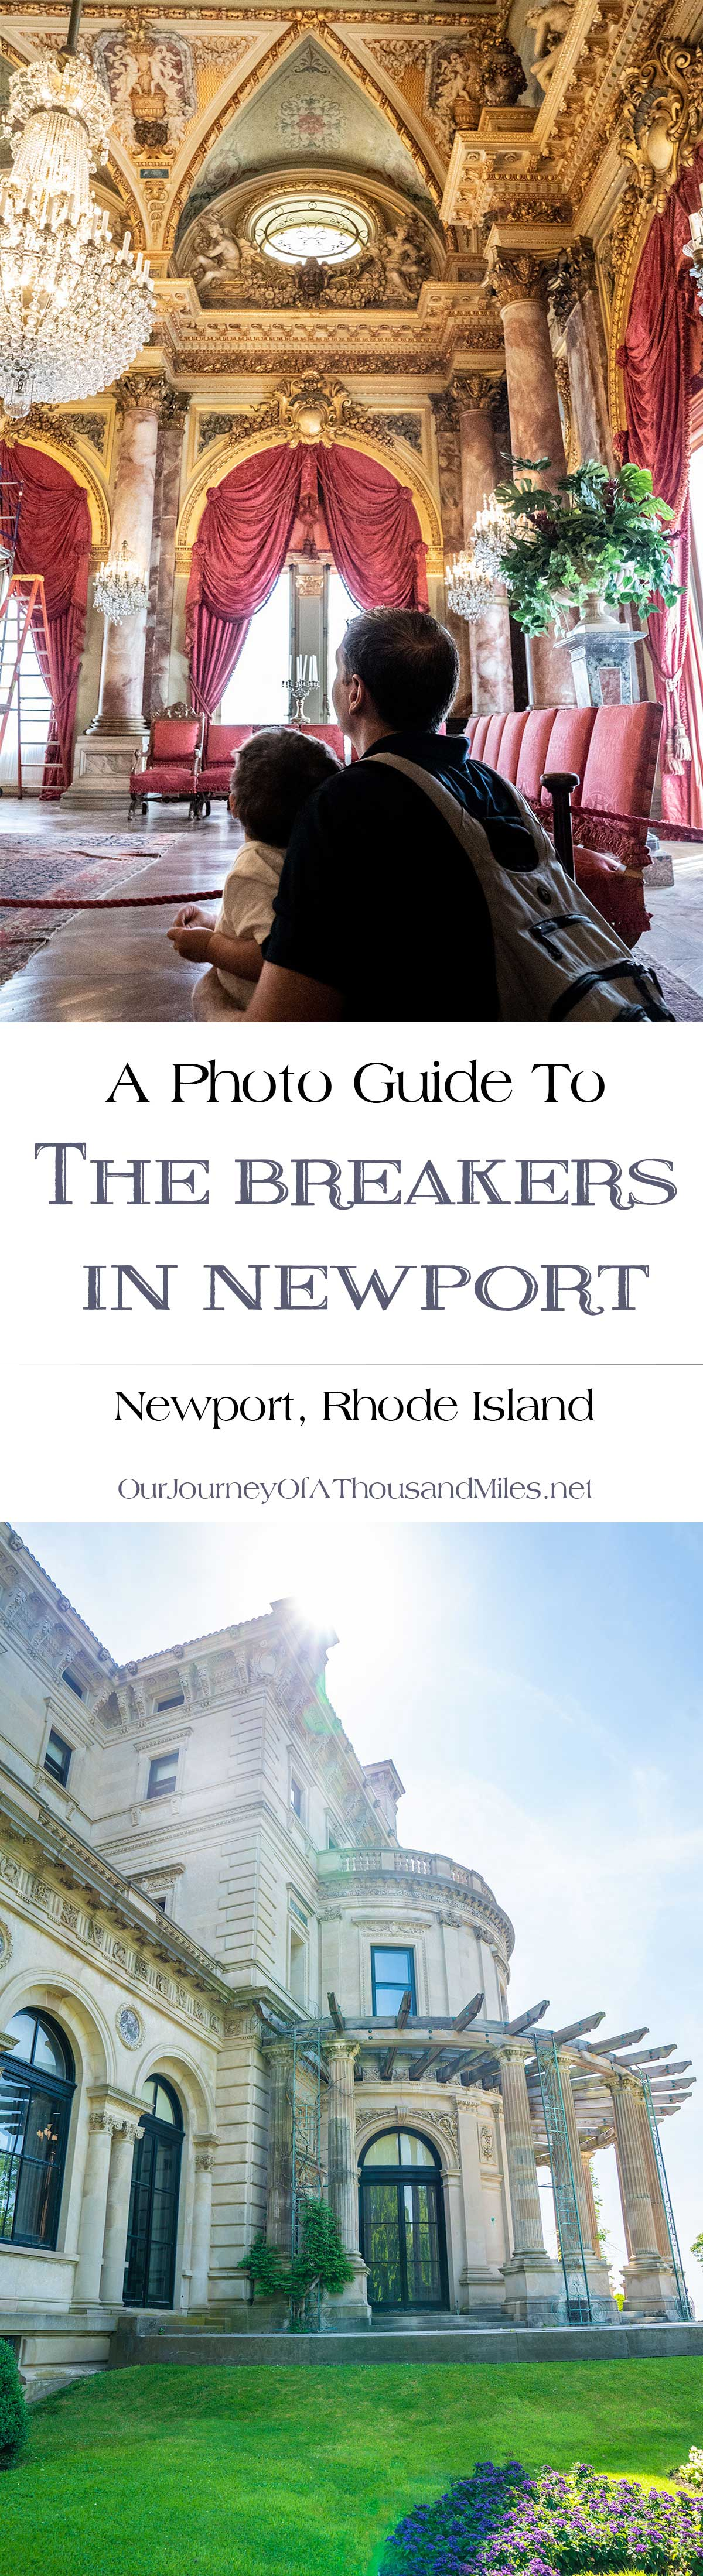 A-Photo-Guide-To-The-Breakers-In-Newport-Rhode-Island